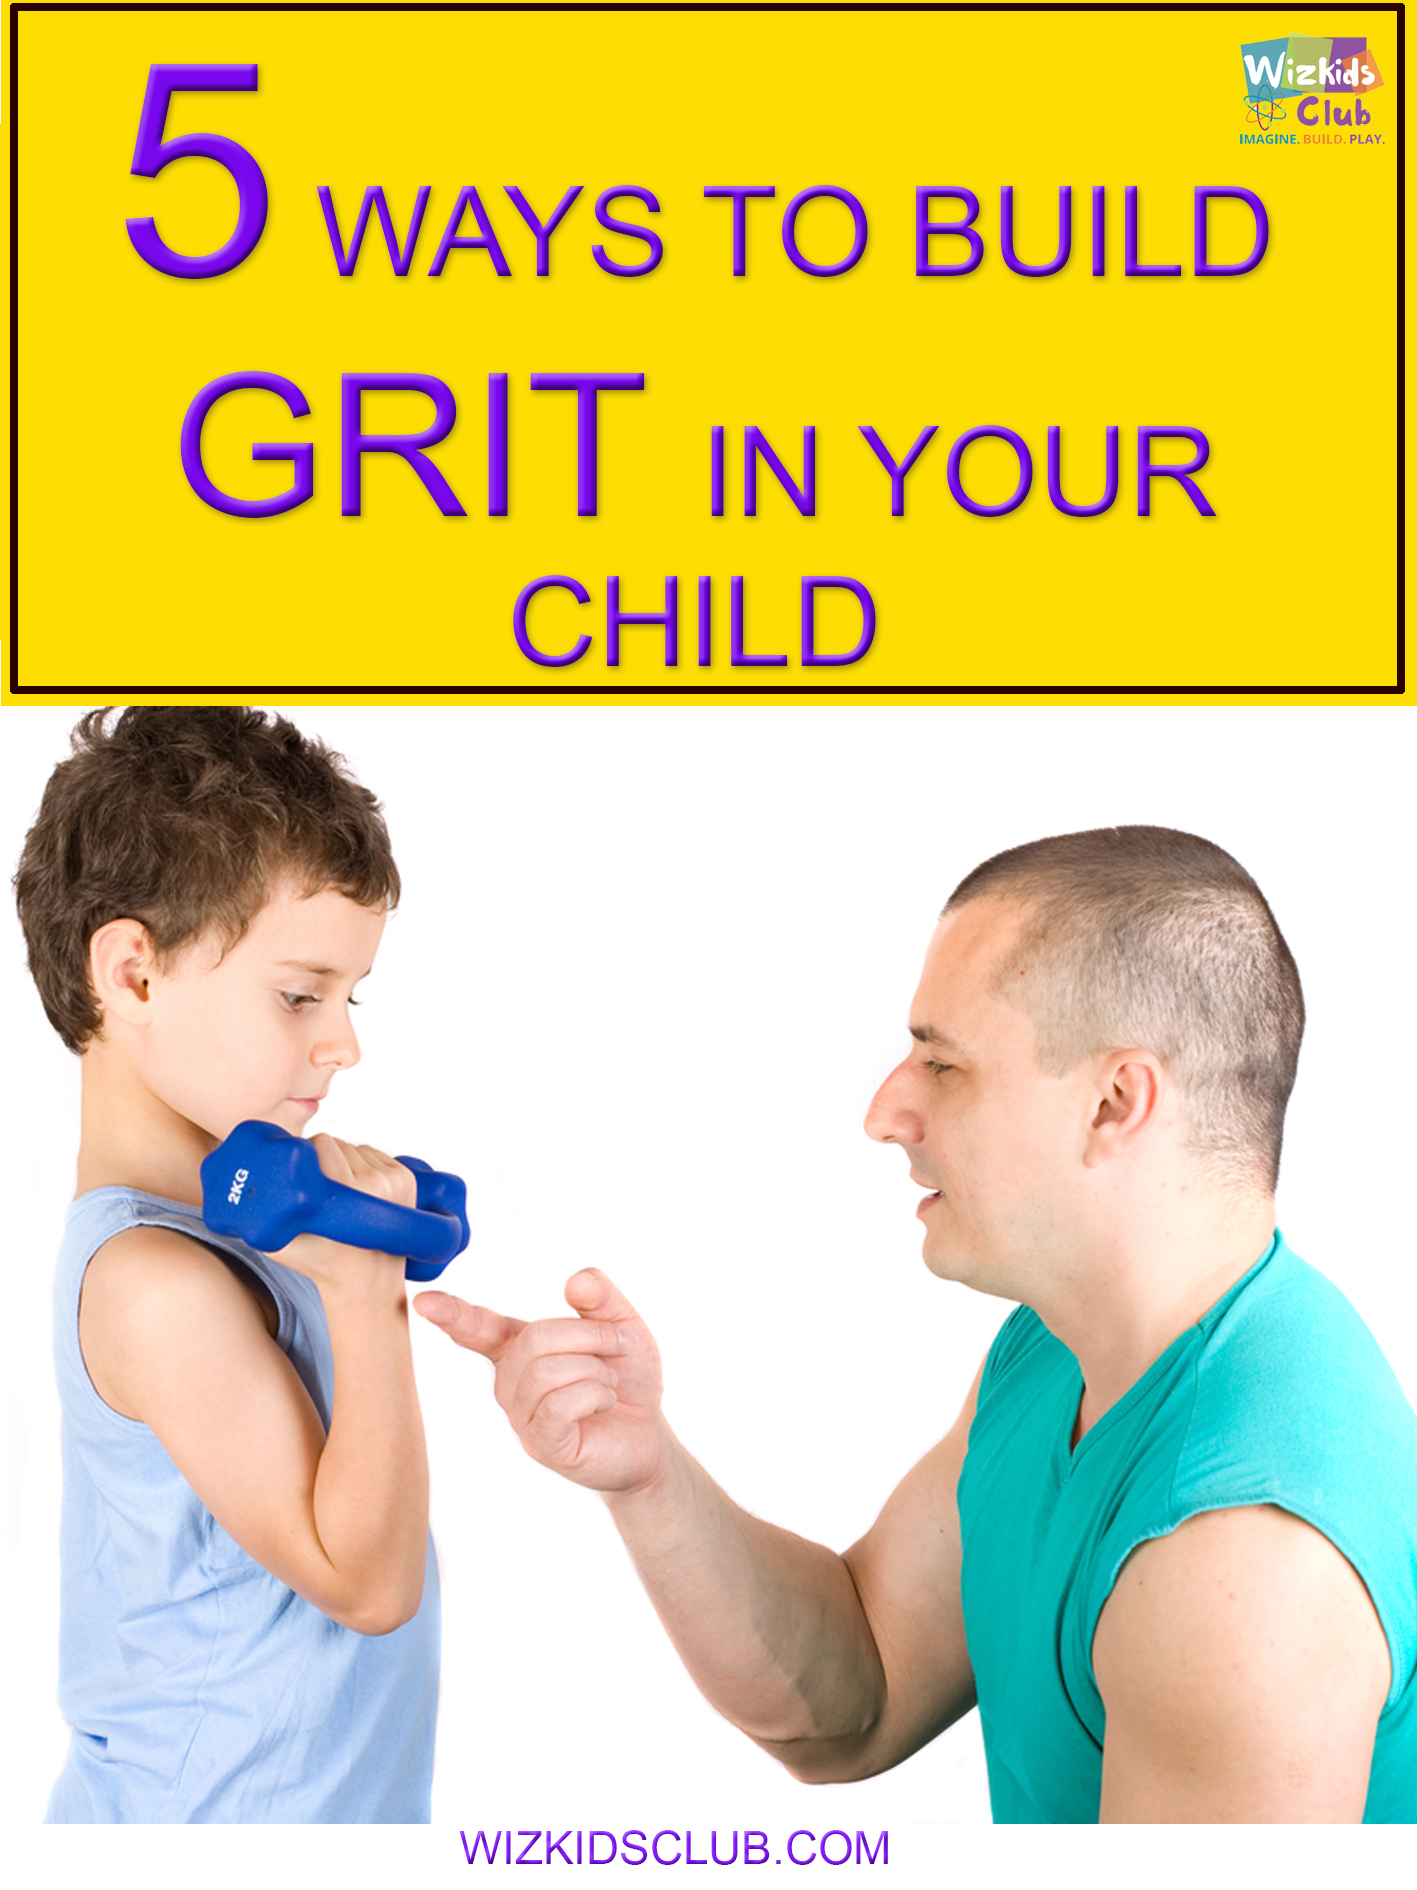 5 WAYS TO BUILD GRIT IN YOUR CHILD!